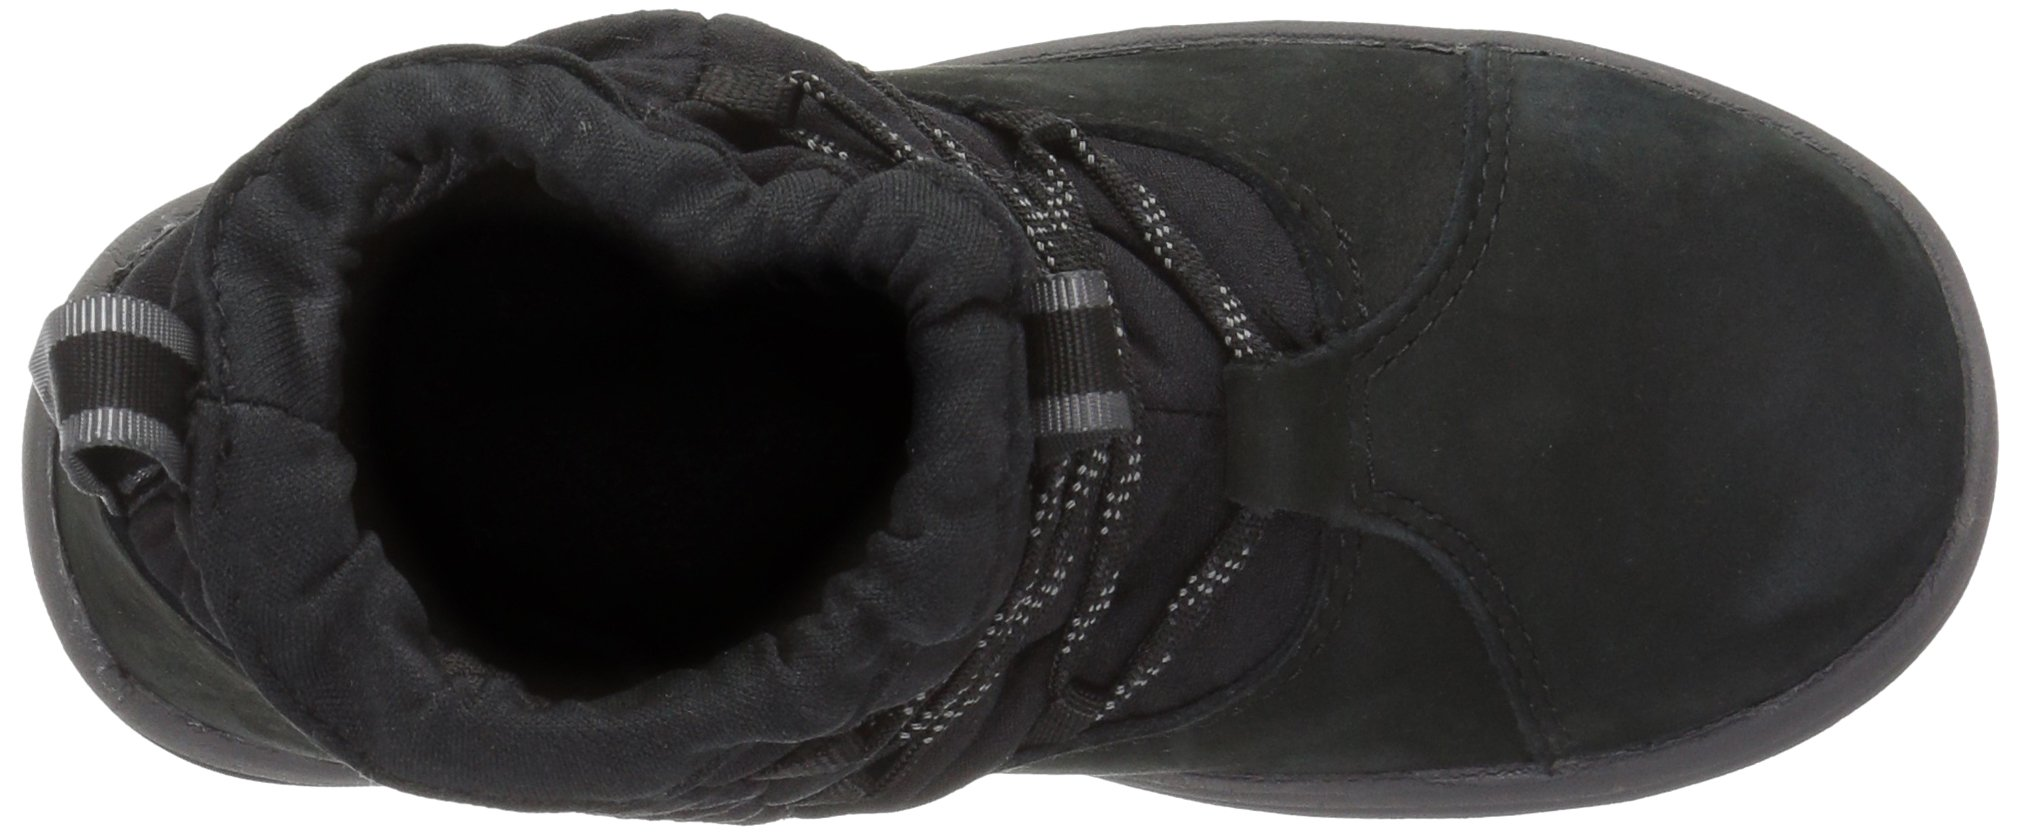 Timberland Unisex Toddle Tracks Warm Fabric Leather Bootie Snow Boot Black Nubuck 12 M US Little Kid by Timberland (Image #8)